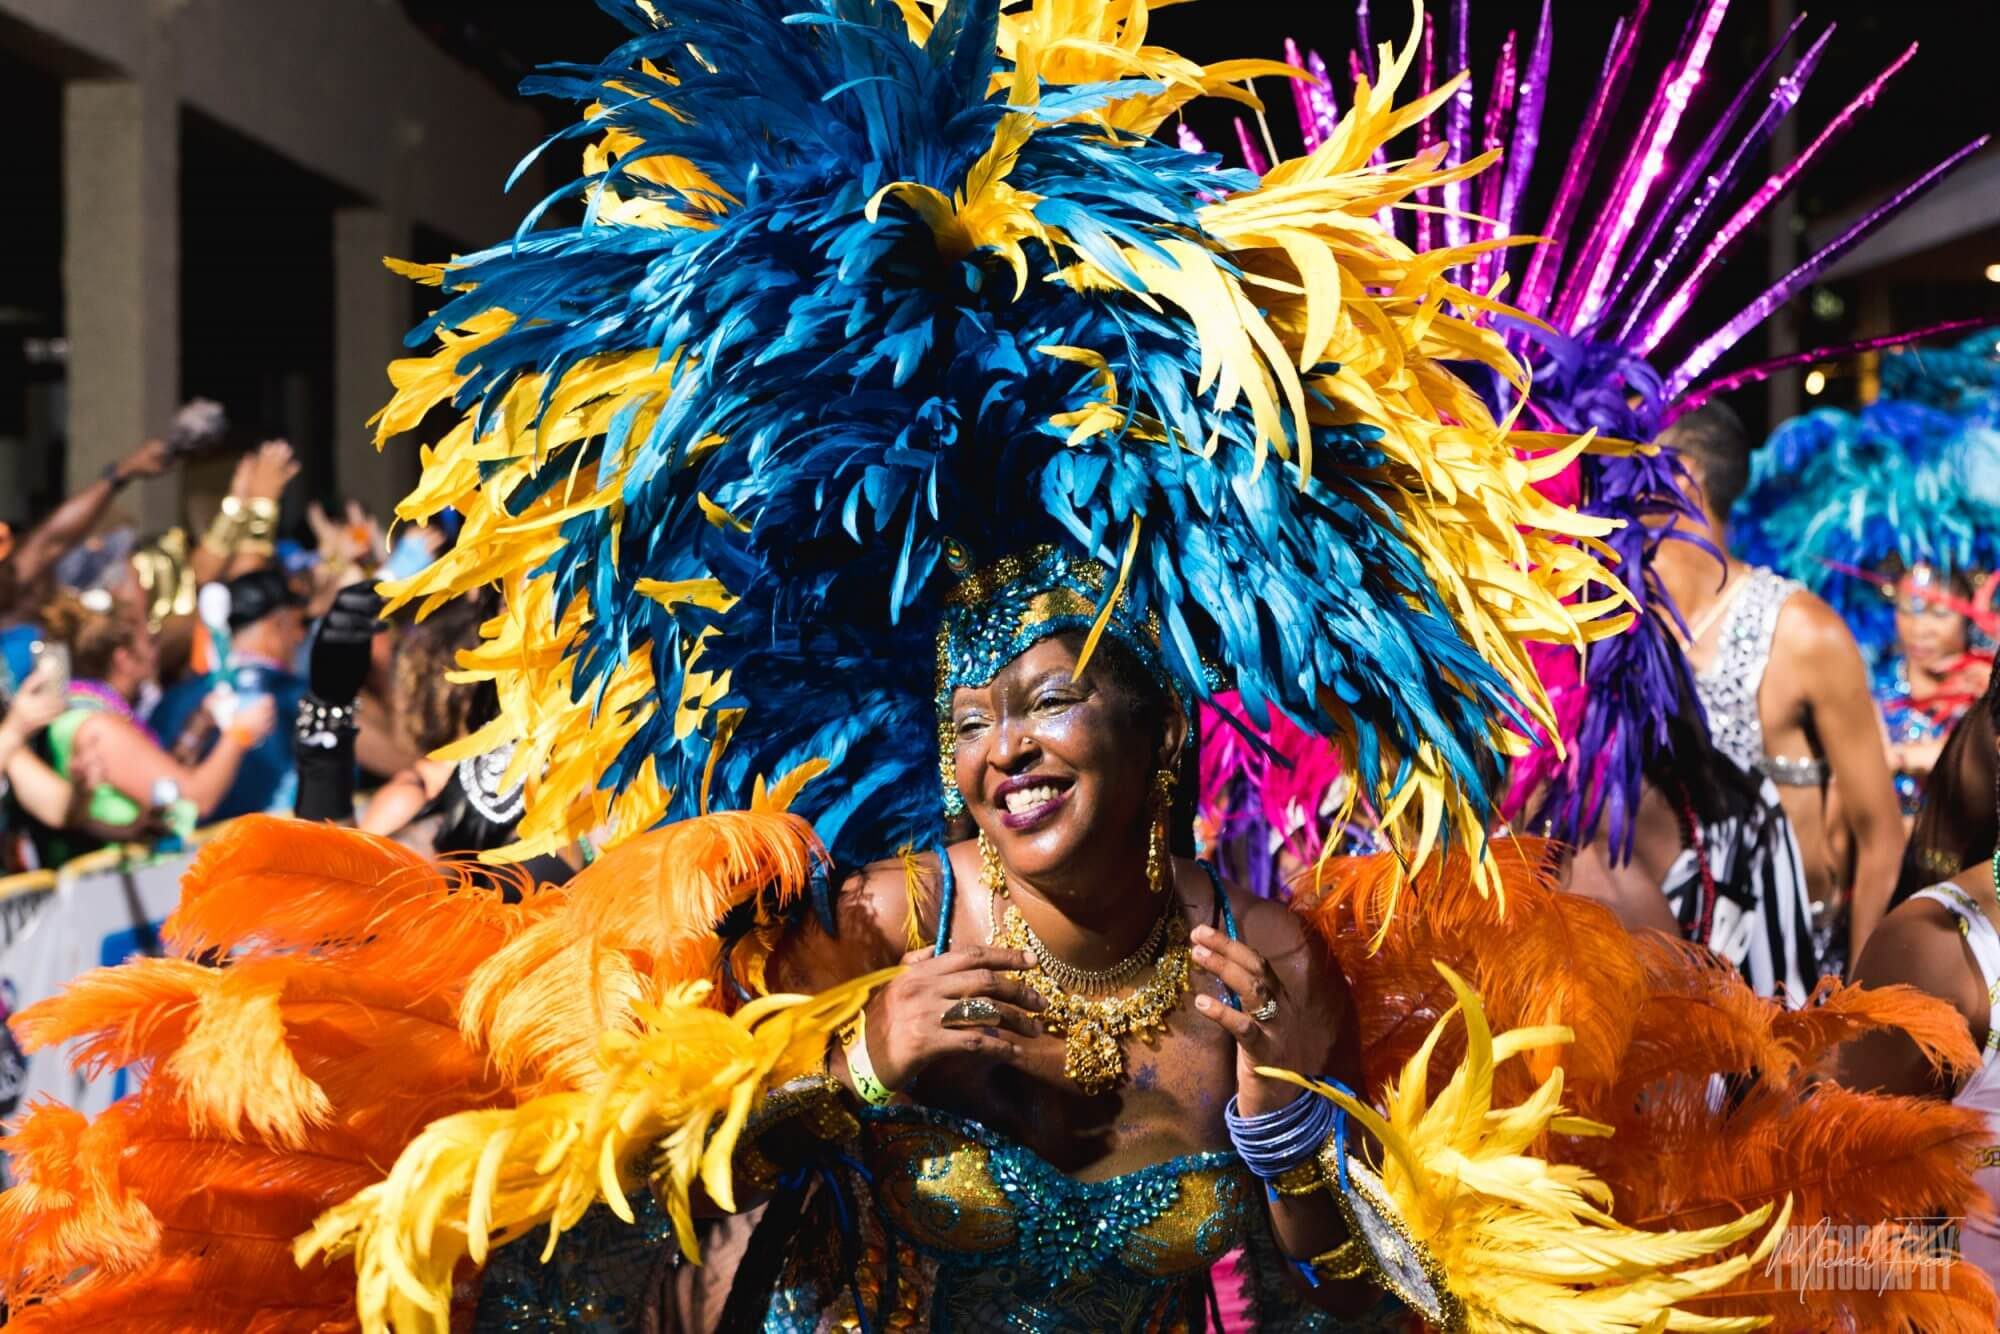 michael freas photography bud light parade 46 - Fantasy Fest 2017 - From the Lens of a Key West Photographer